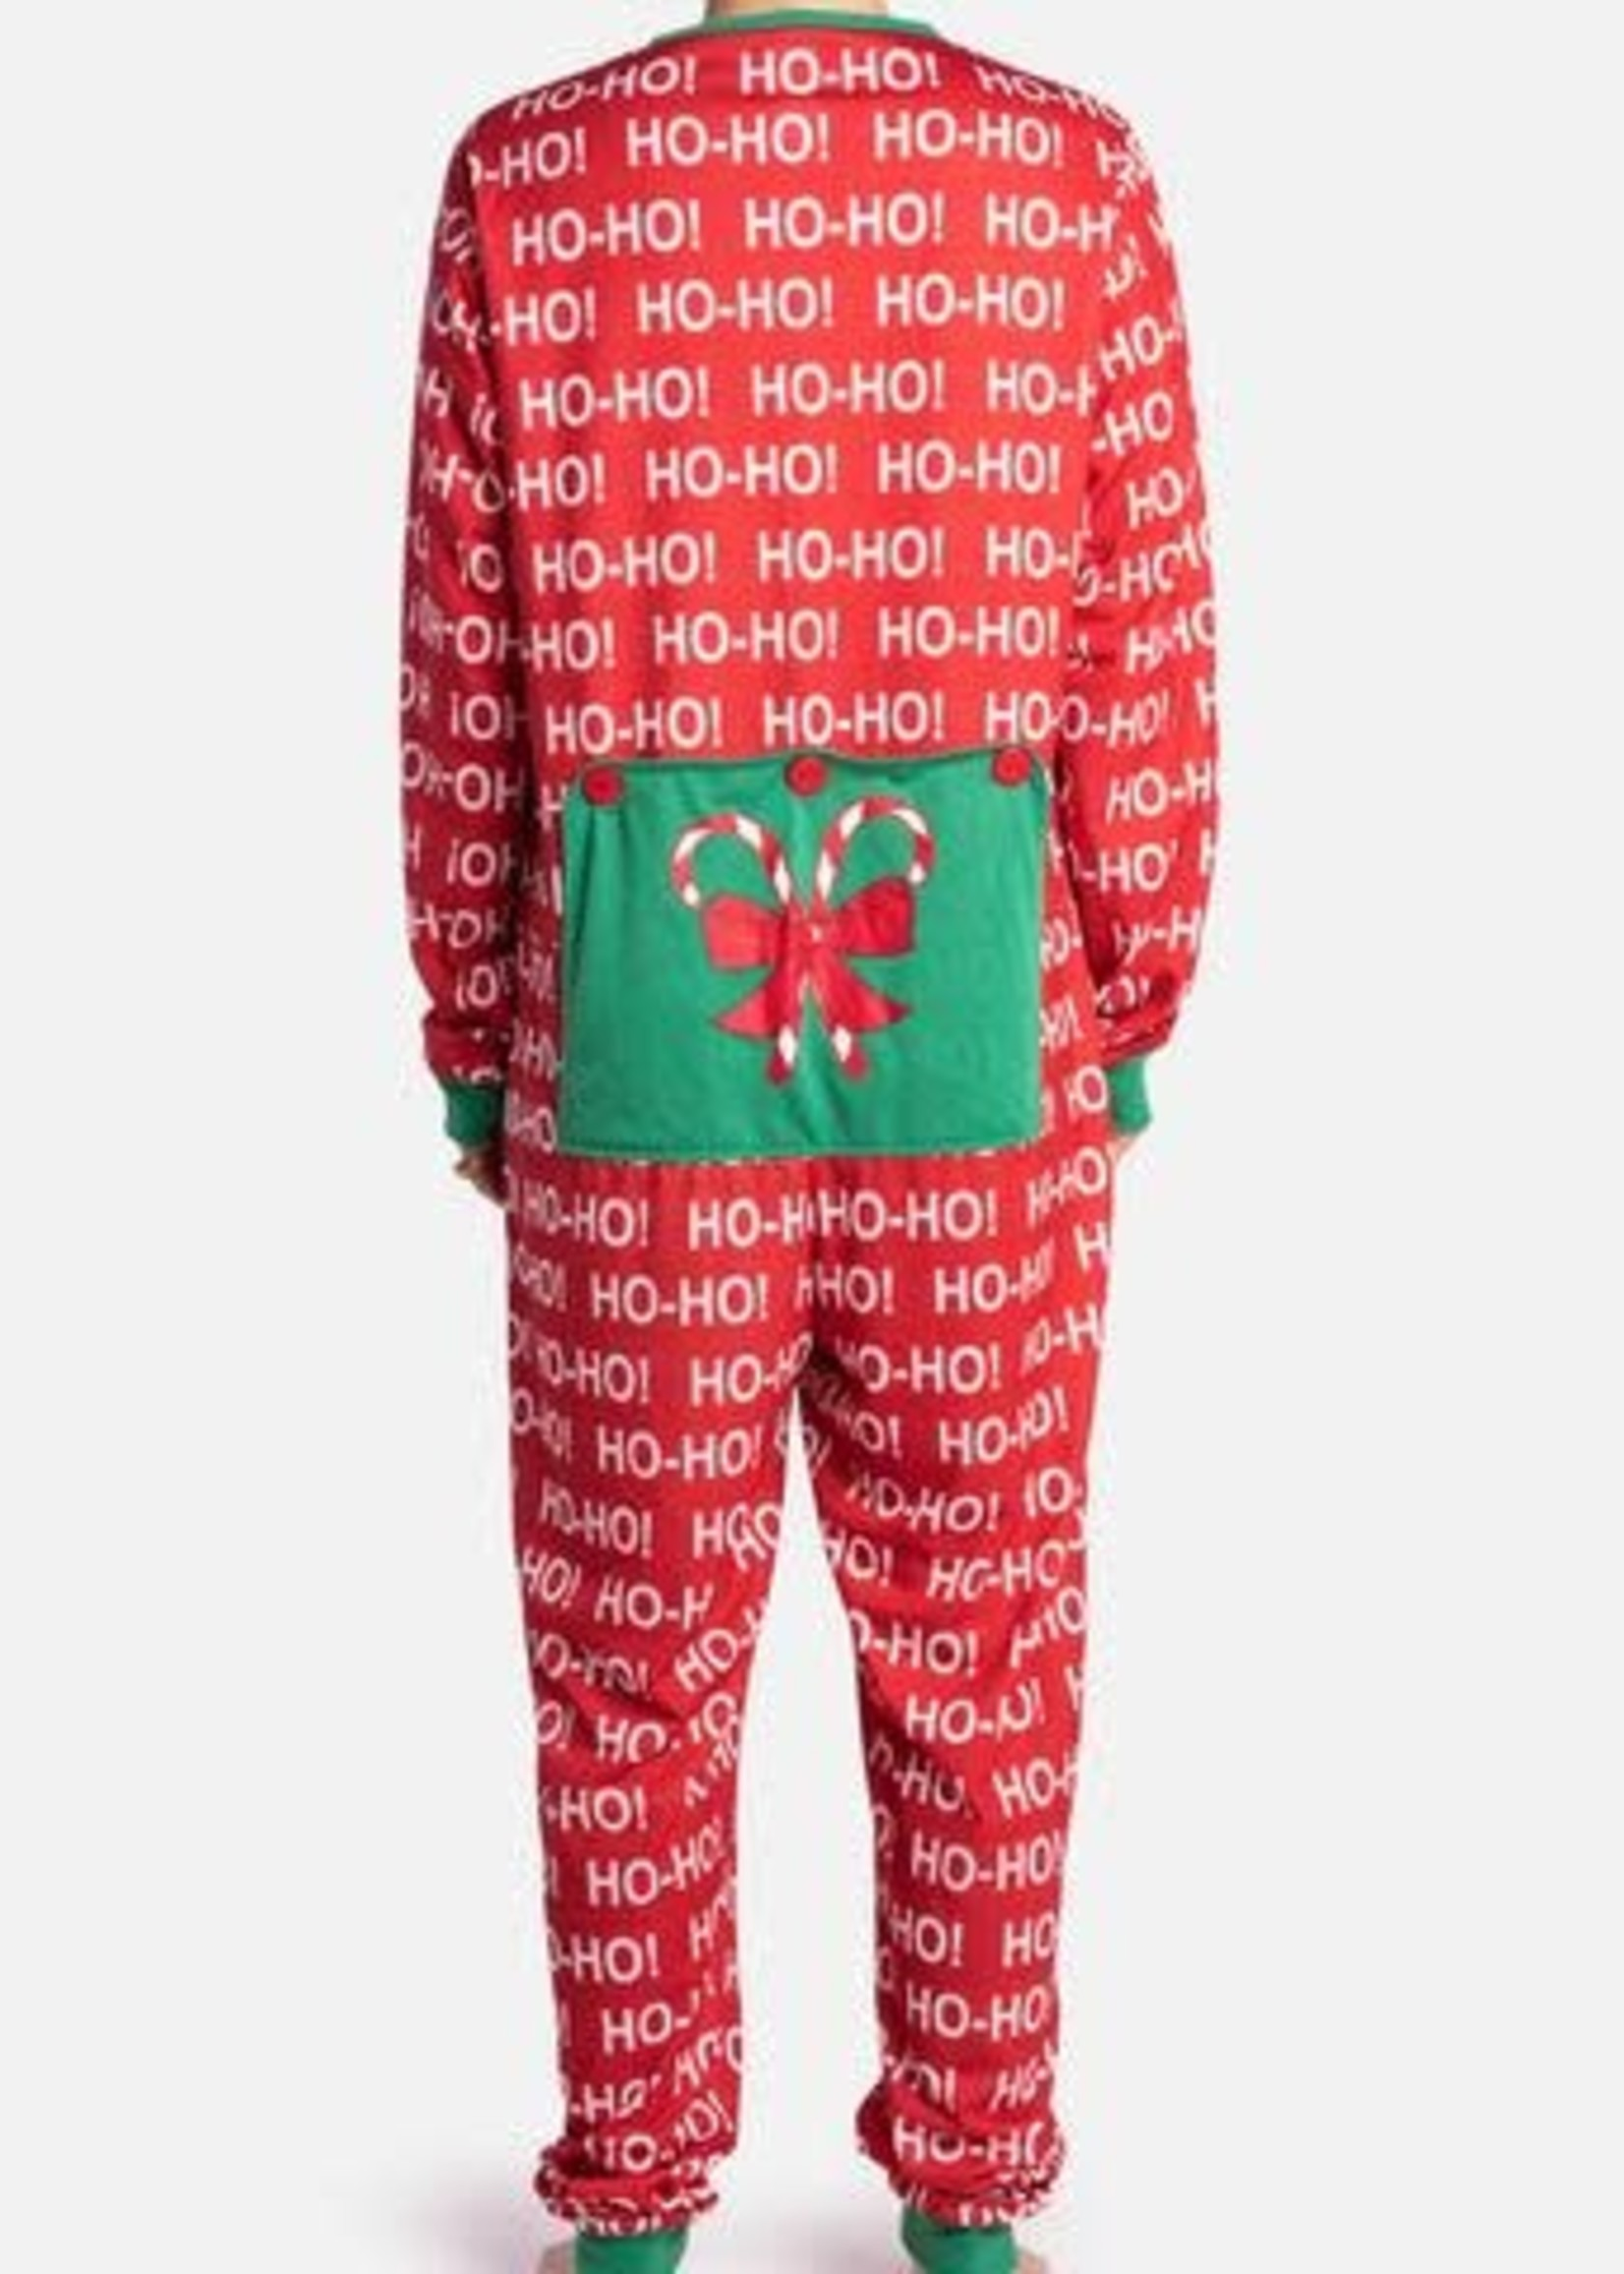 Silver Paw™ Silver Paw Human Onesie Ho-Ho-Ho- Large